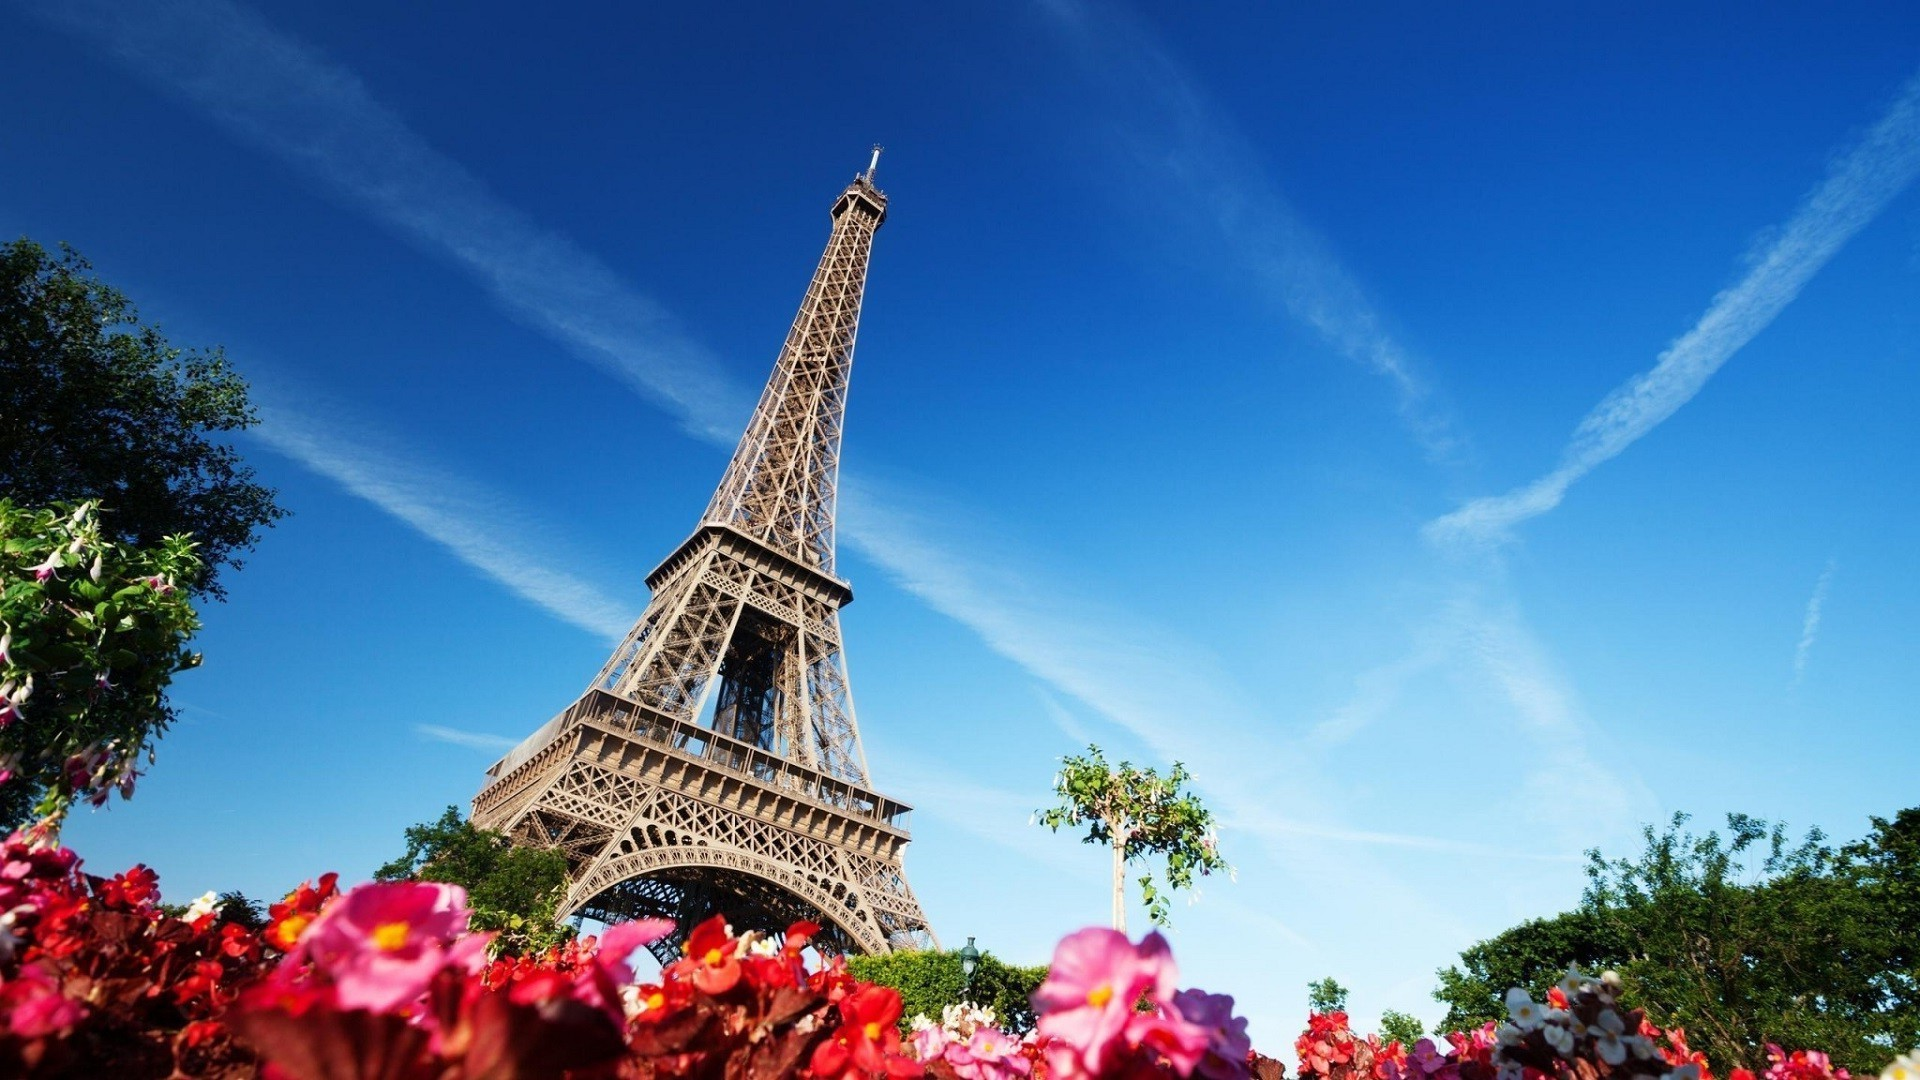 30 Paris France Eiffel Tower Wallpapers On Wallpapersafari